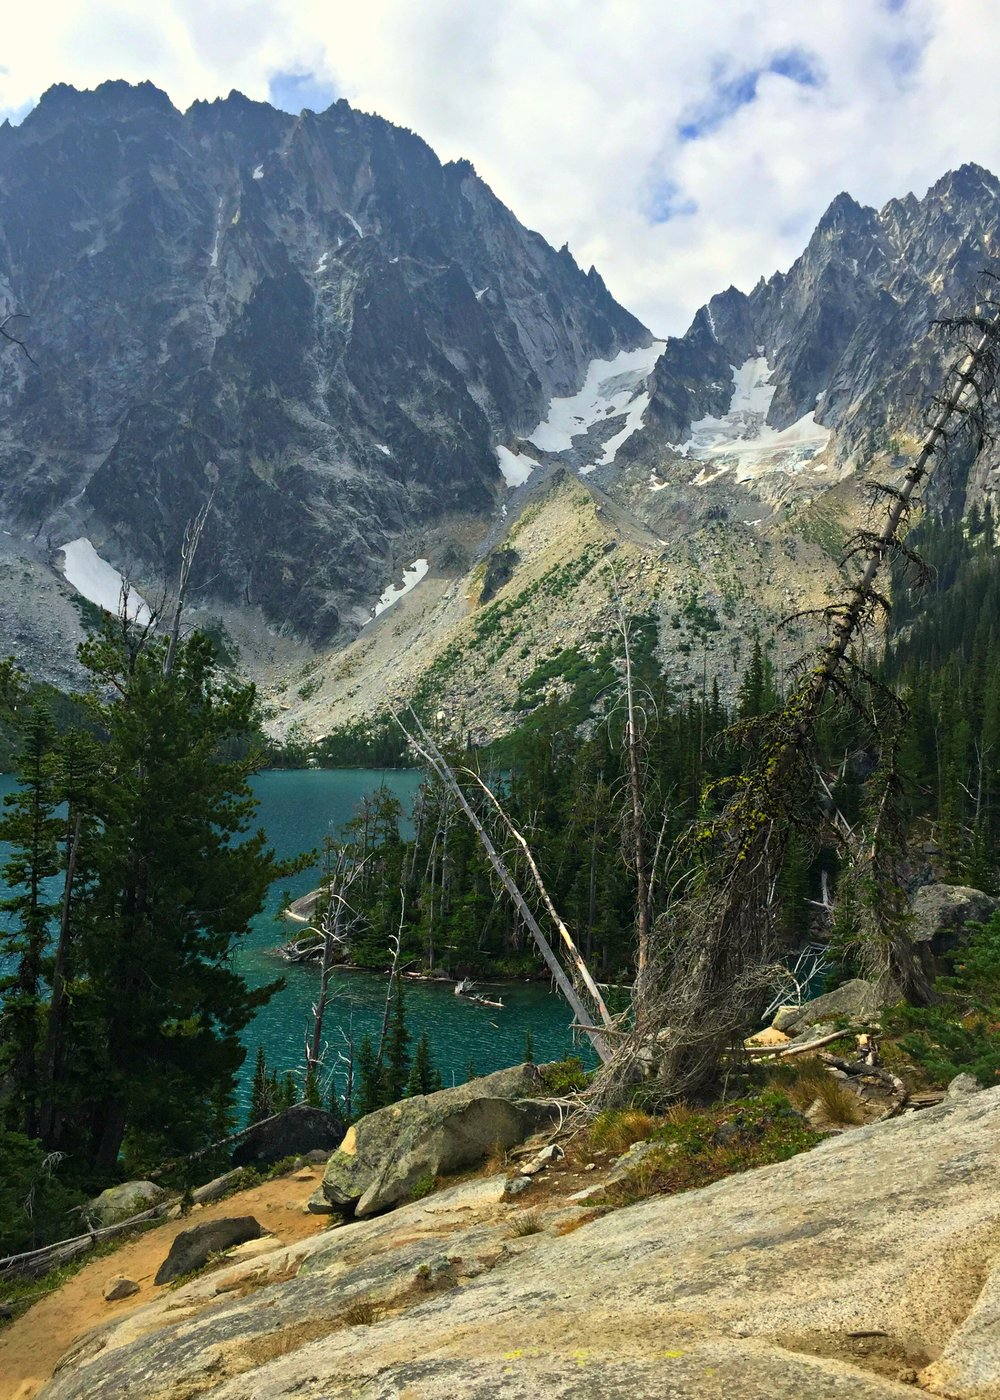 Colchuck Lake in Washington's Alpine Lakes Wilderness Area